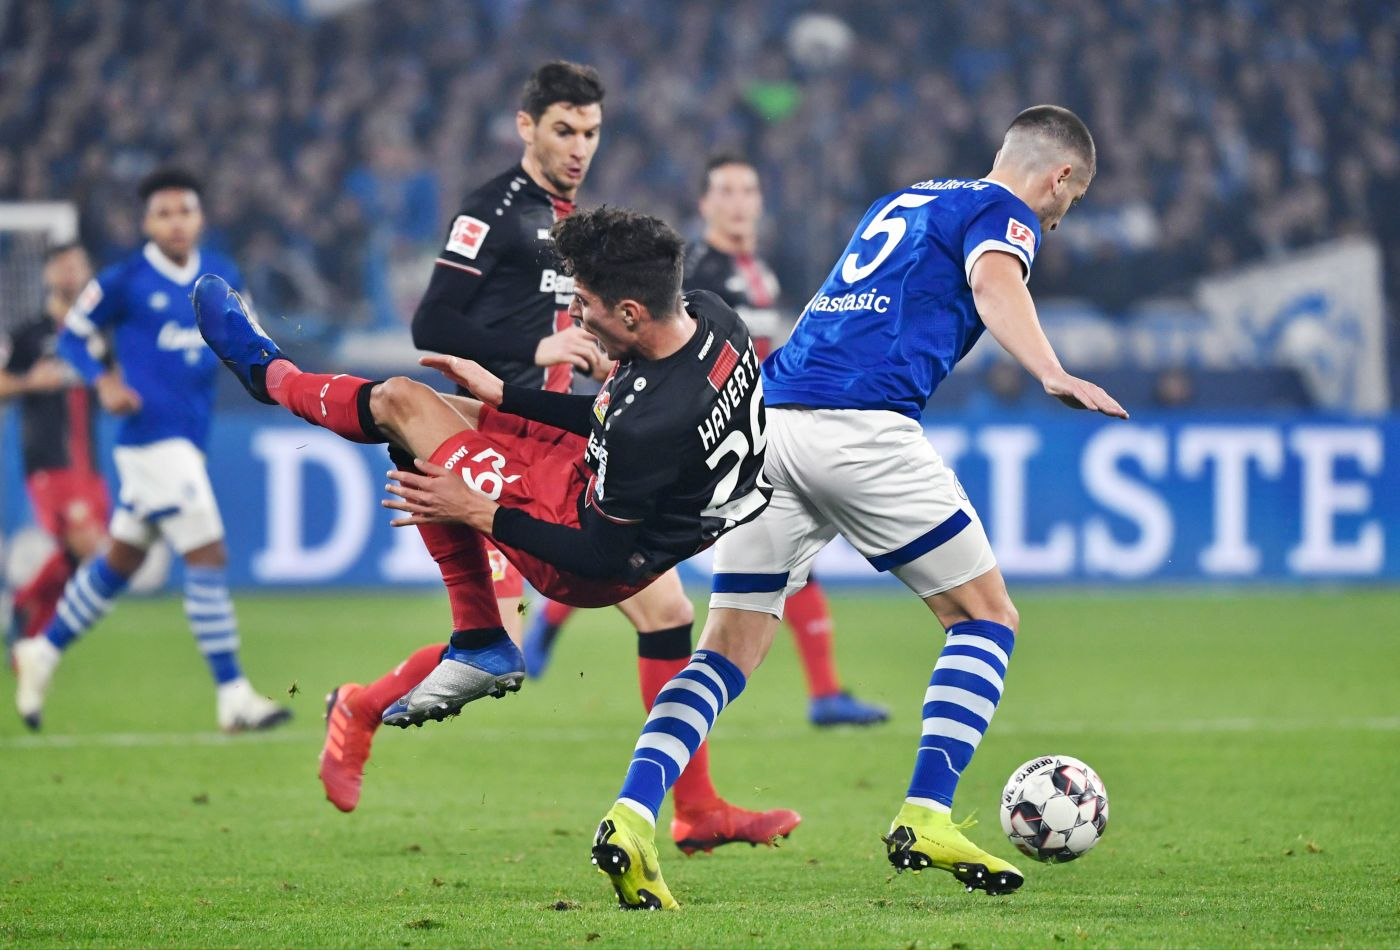 -- Schalke's Serbian defender Matija Nastasic and Leverkusen's German midfielder Kai Havertz (l) vie for the ball during the German first division football match between FC Schalke 04 and Bayer Leverkusen on December 19, 2018.  - Germany OUT / DFL REGULATIONS PROHIBIT ANY USE OF PHOTOGRAPHS AS IMAGE SEQUENCES AND/OR QUASI-VIDEO / AFP / dpa / Ina Fassbender / DFL REGULATIONS PROHIBIT ANY USE OF PHOTOGRAPHS AS IMAGE SEQUENCES AND/OR QUASI-VIDEO